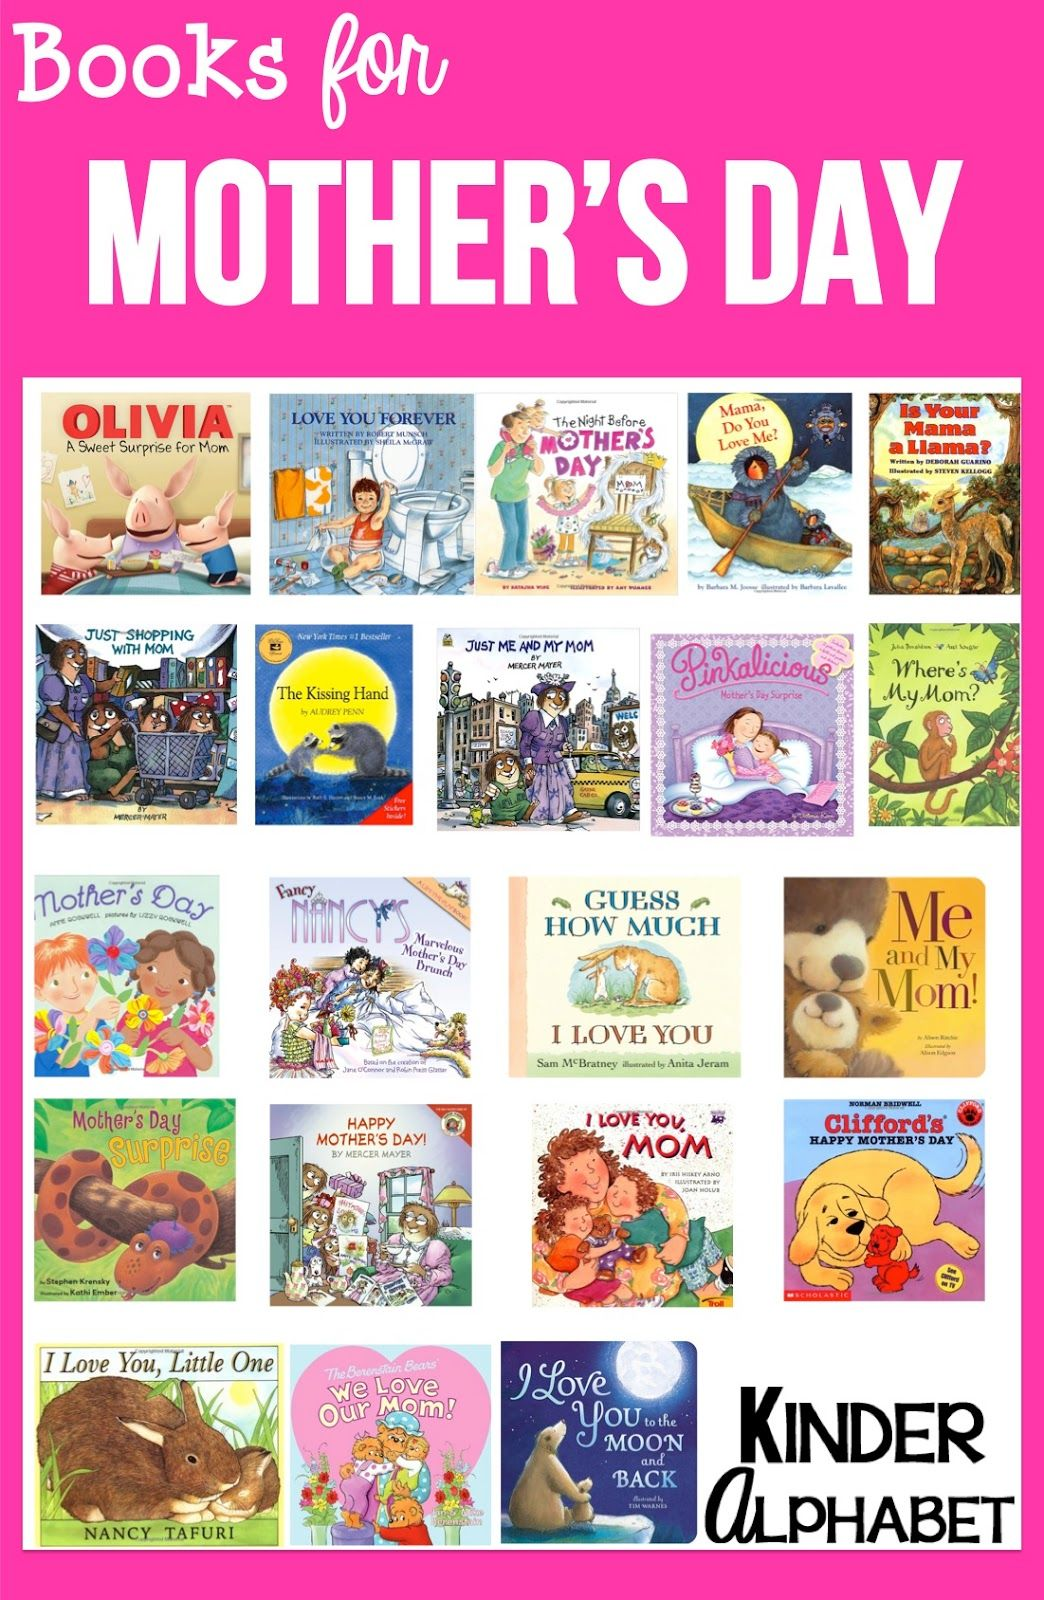 21 books for mothers day mothers day book mothers day